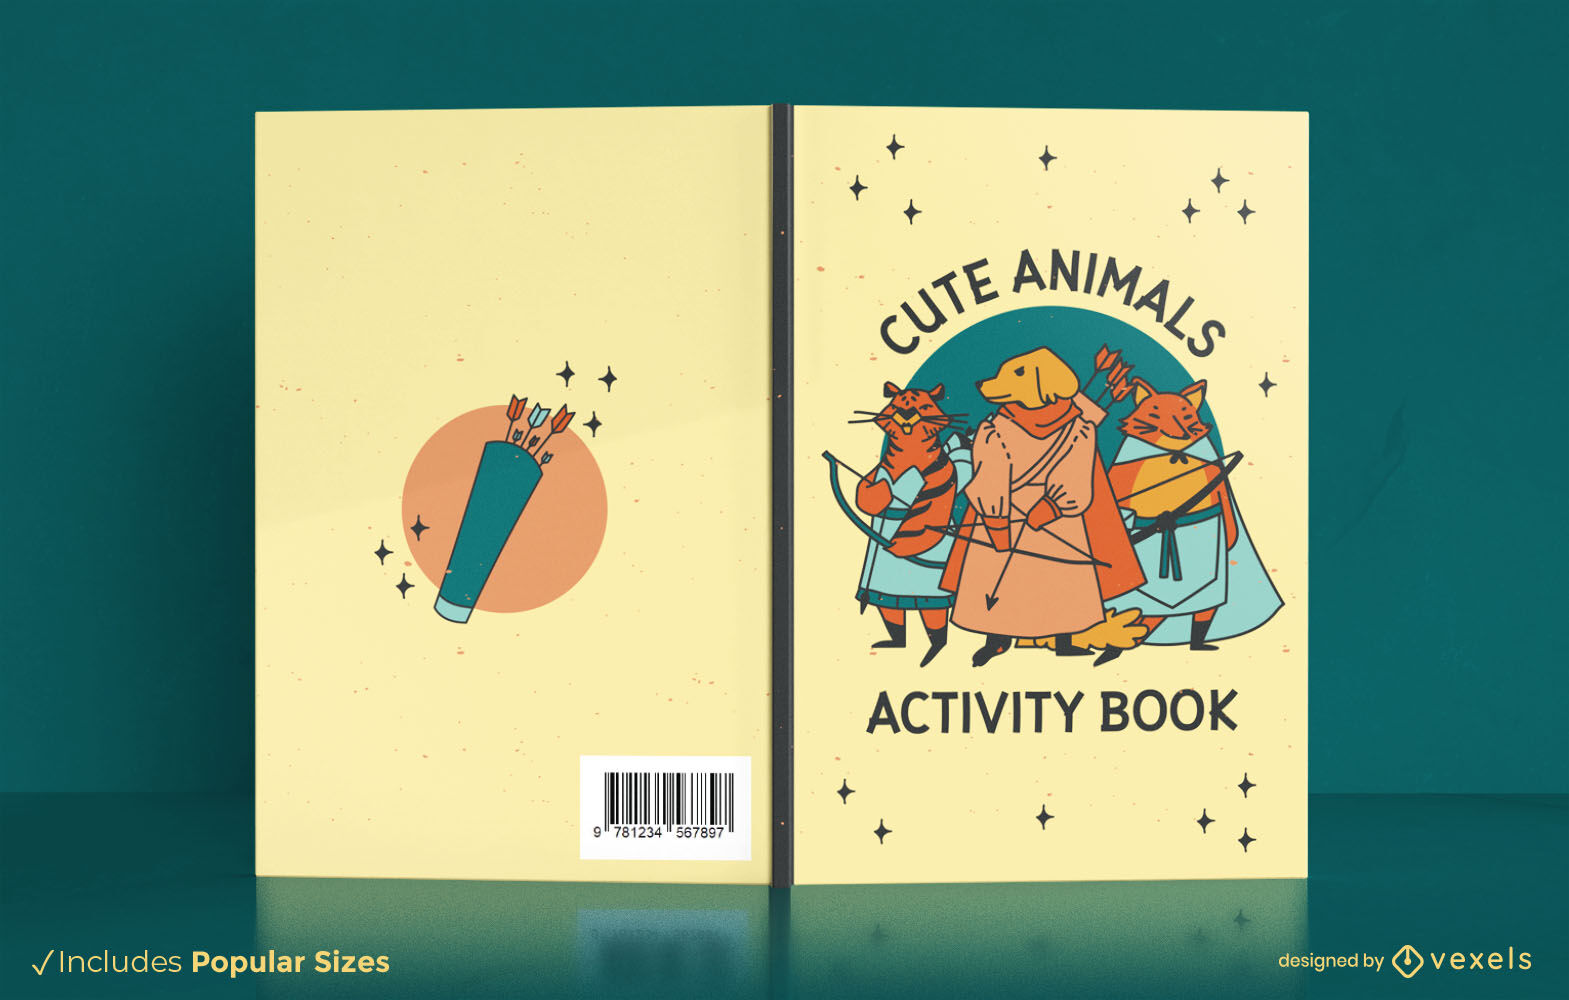 Medieval animal characters book cover design